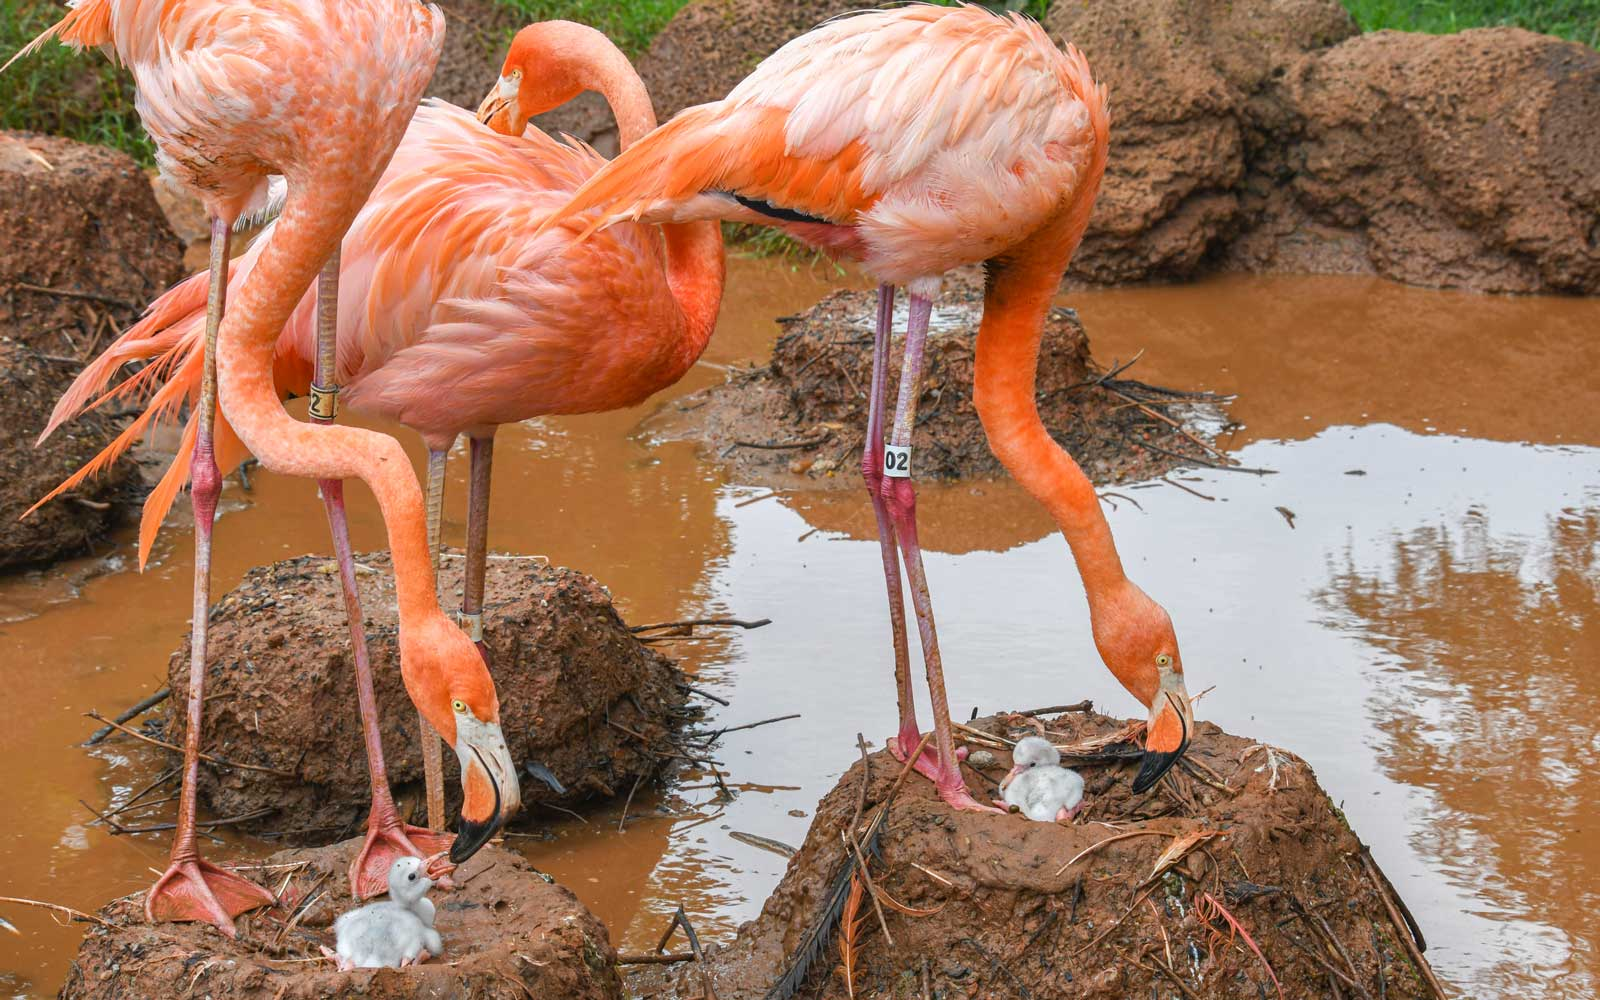 The Oklahoma City Zoo is 'tickled pink' to welcome 3 baby flamingos to its flock